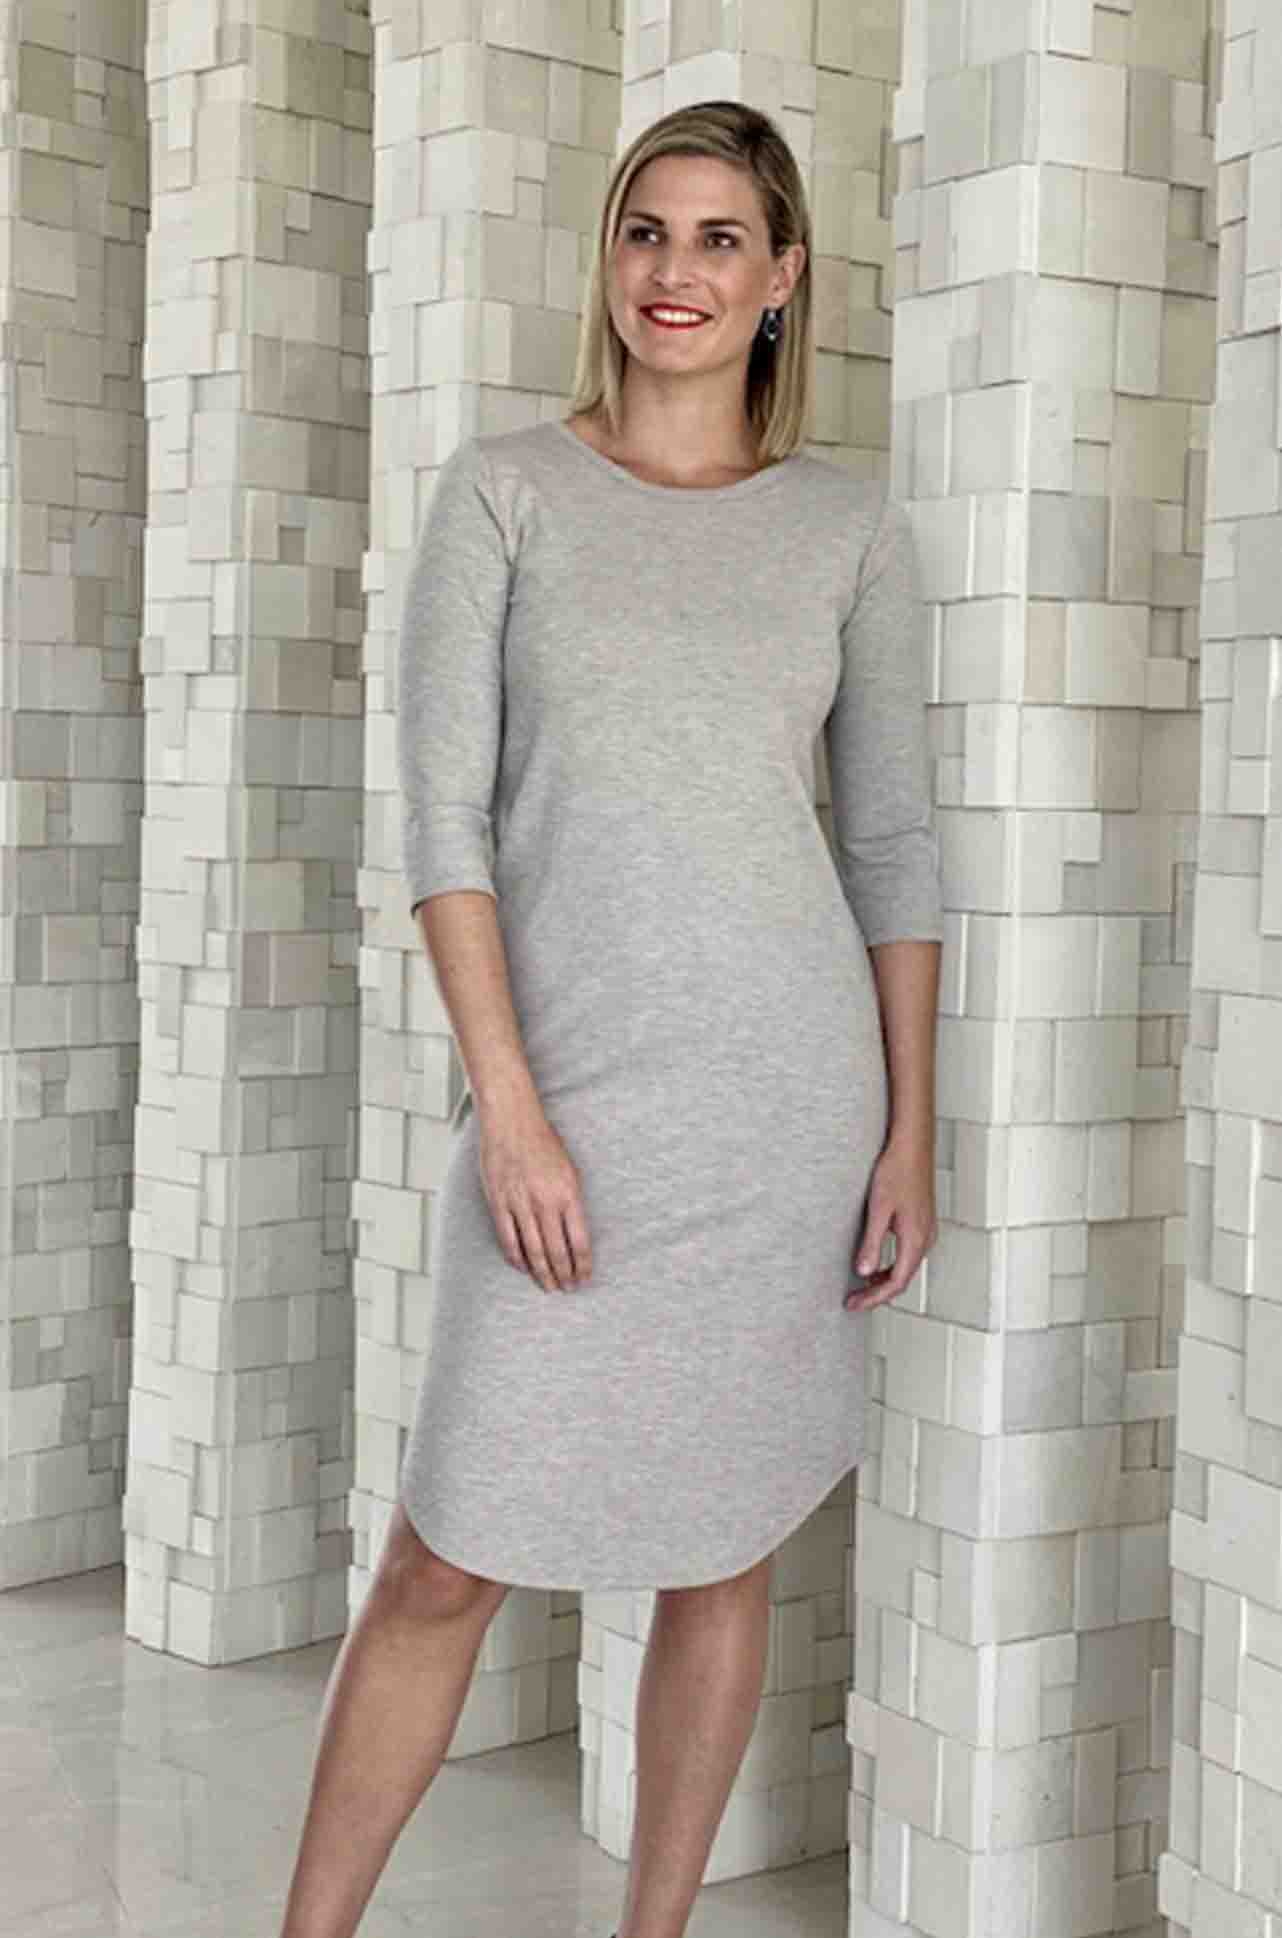 Mela Purdie - Pavillion Dress in Compact Knit